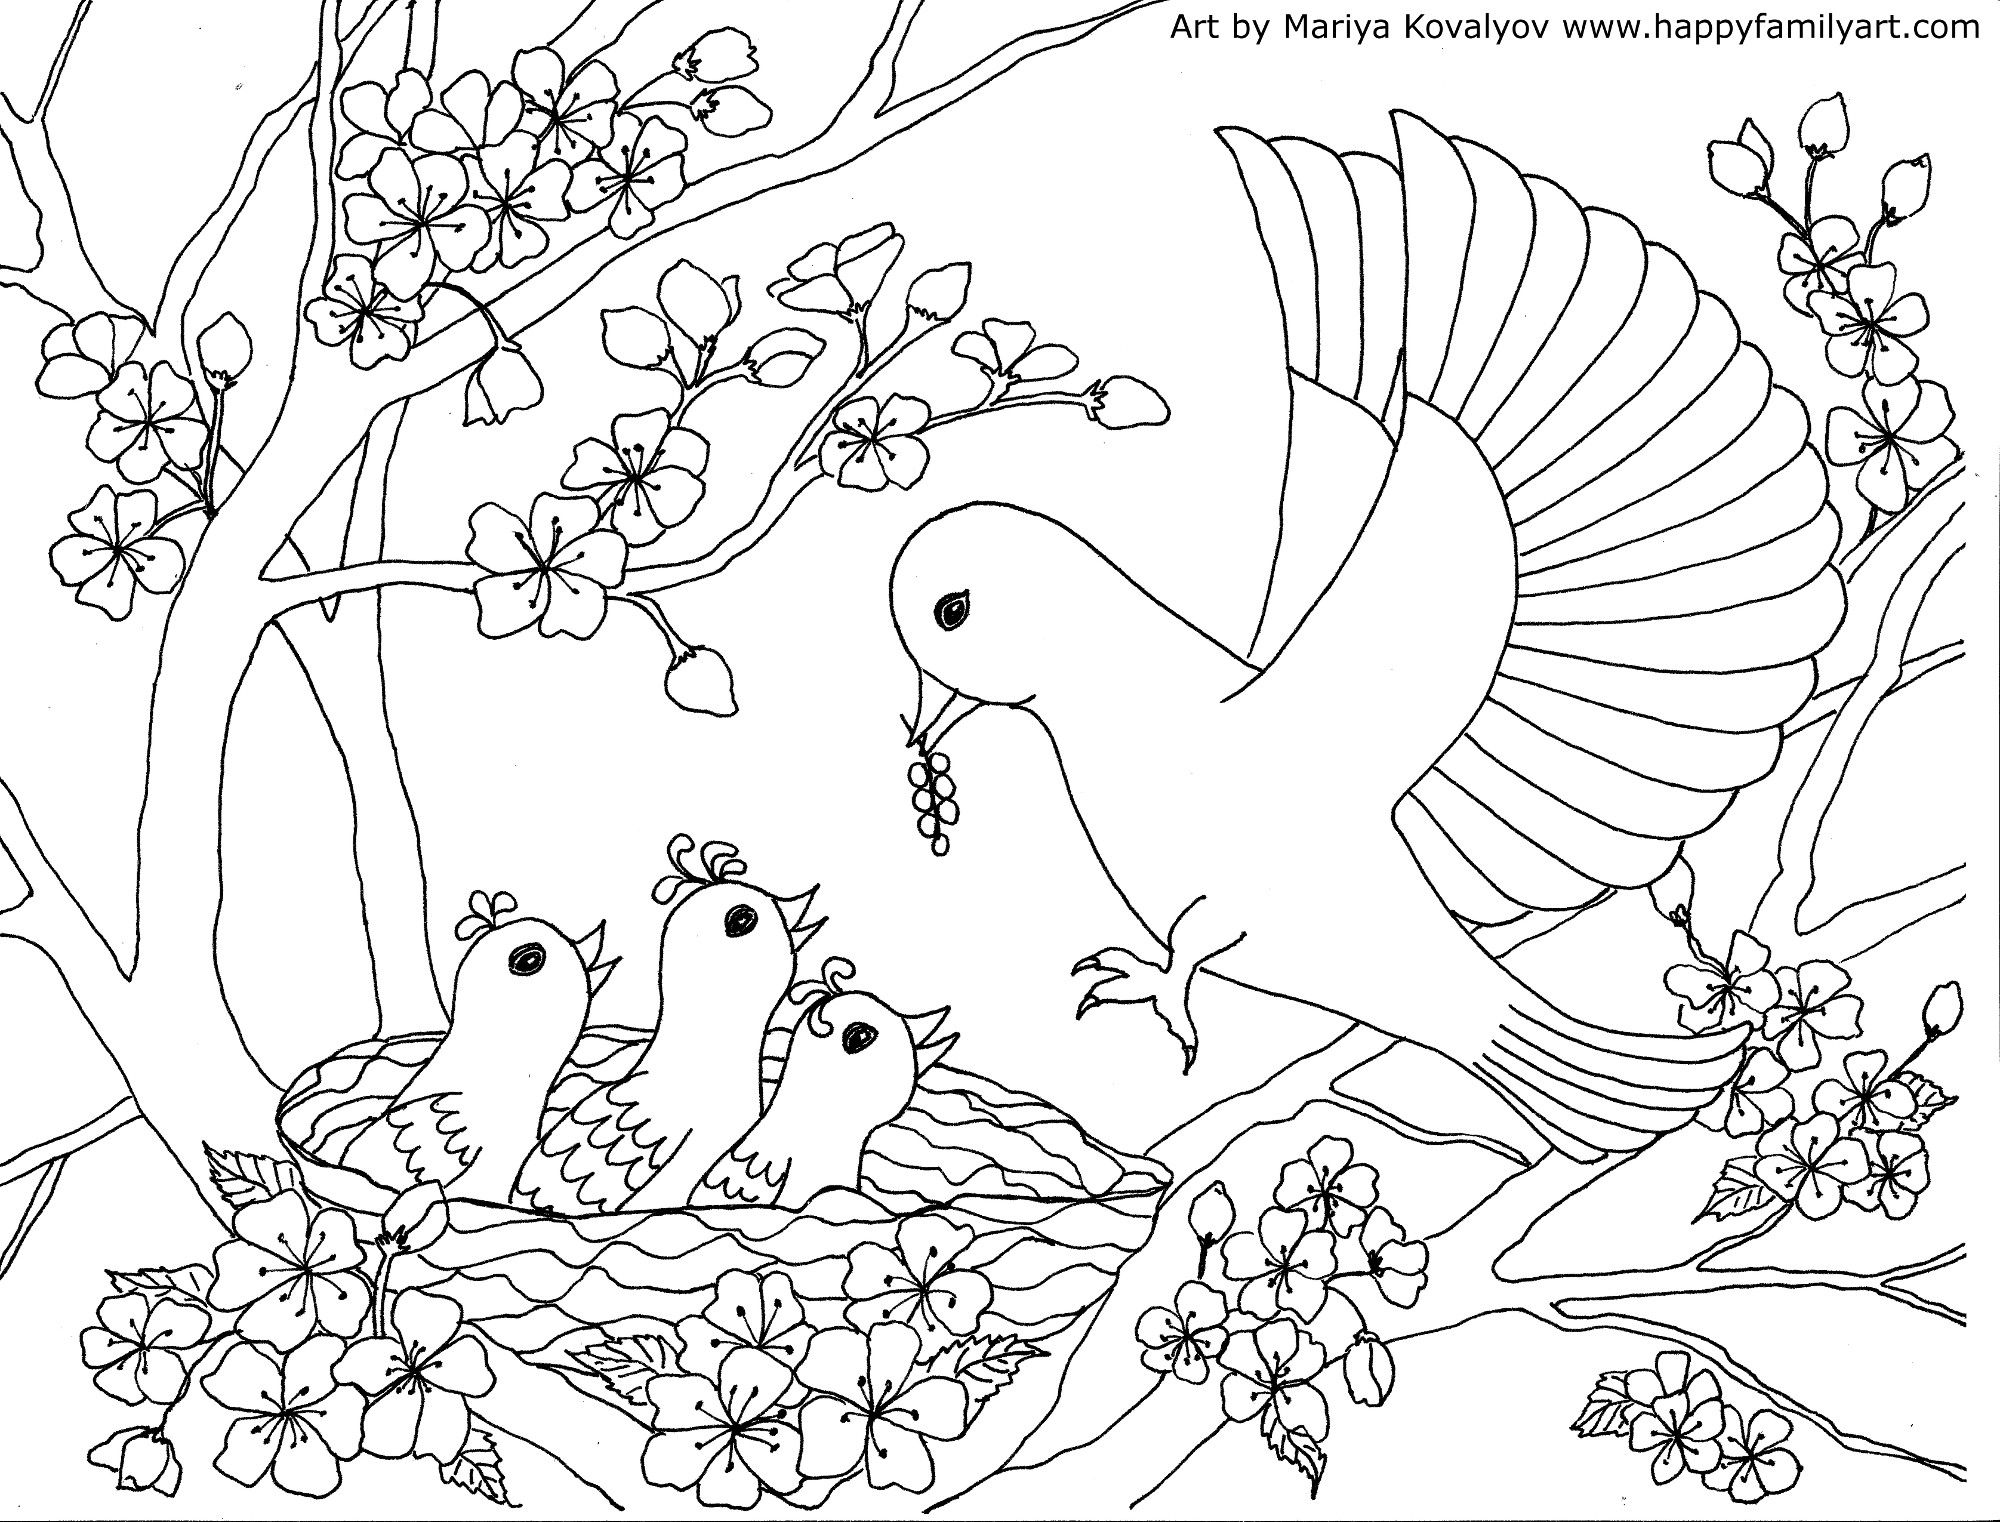 mother bird baby birds coloring page please make sure to know that all of